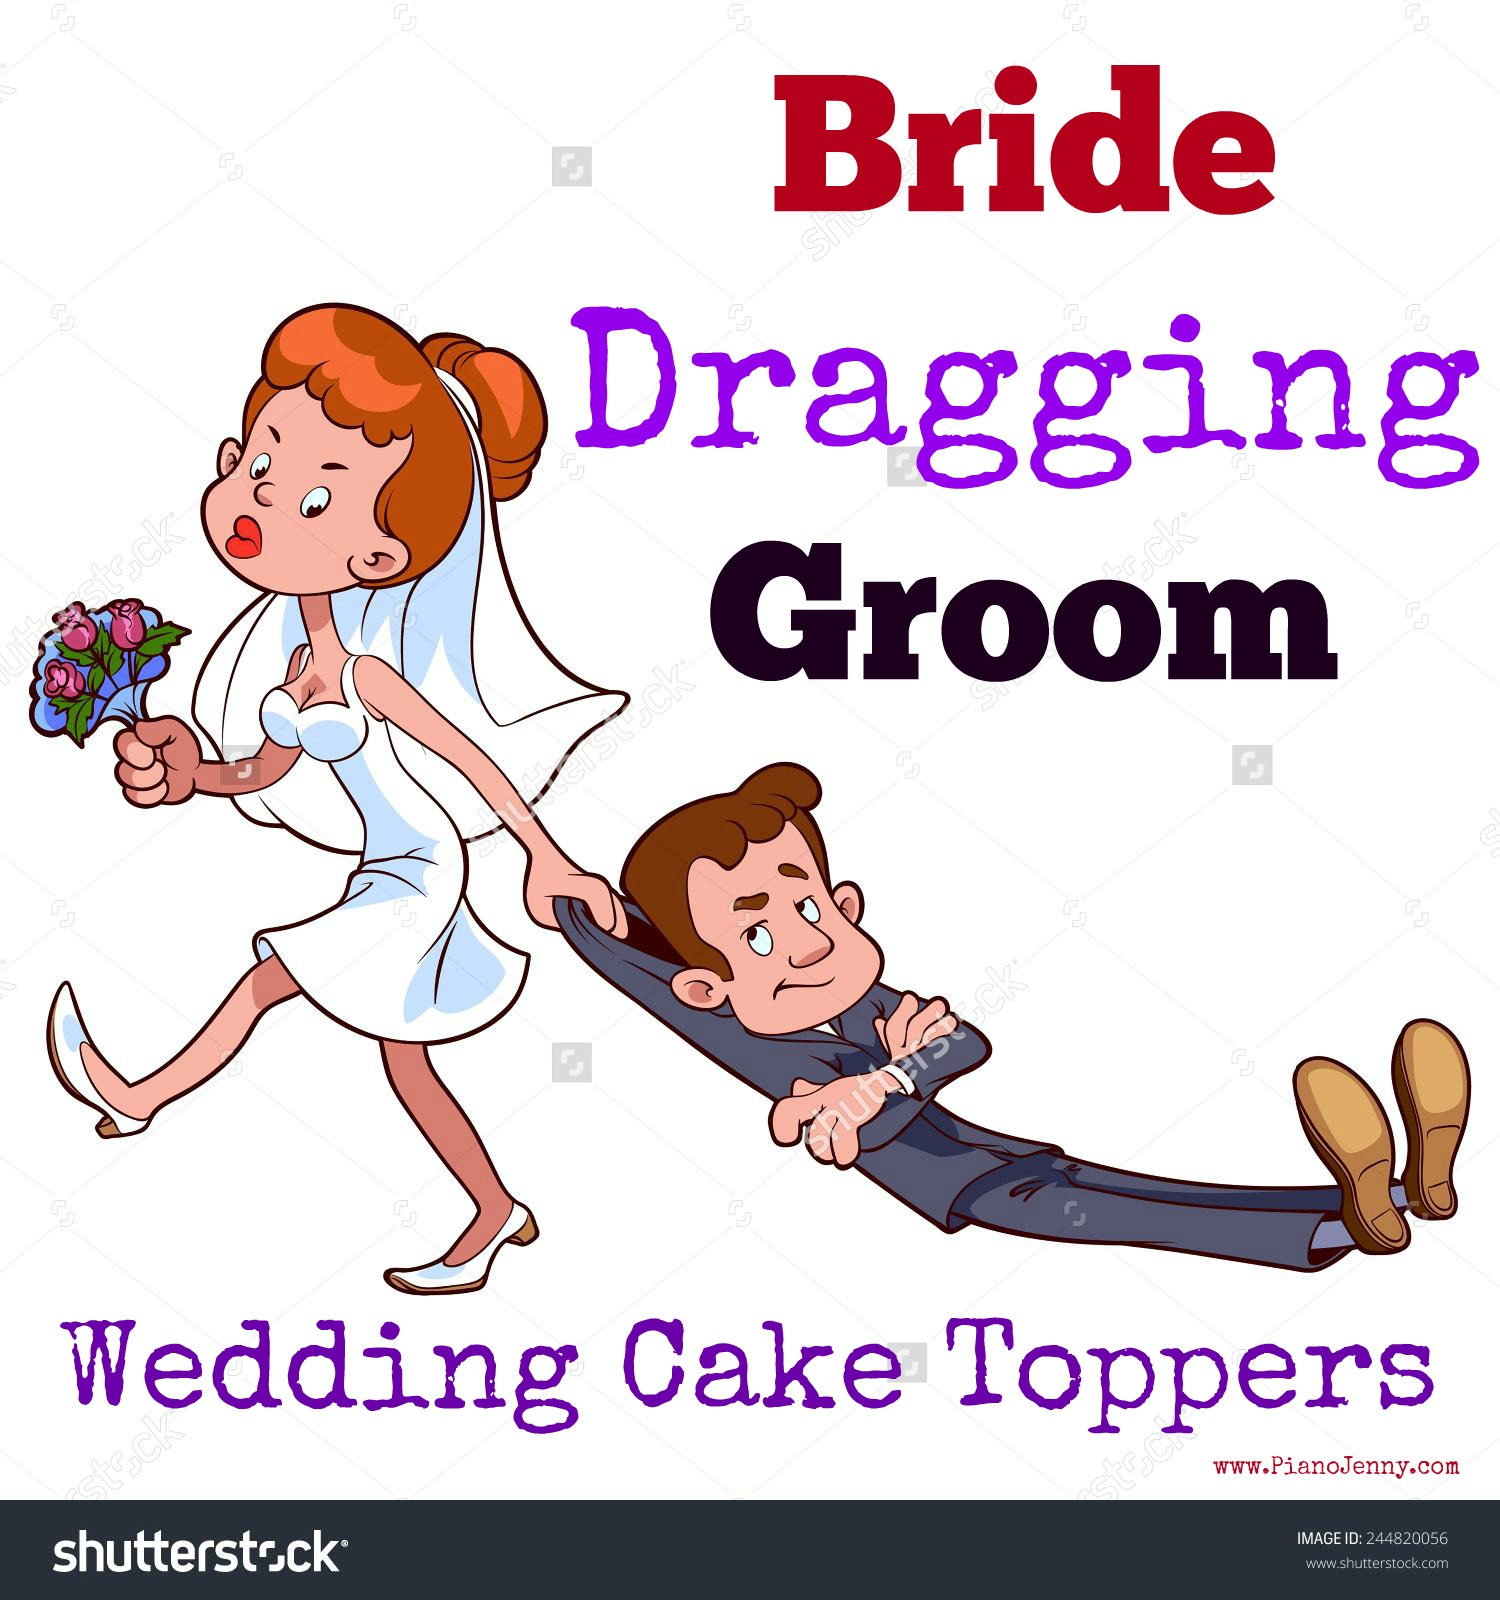 Wife Dragging Husband Cake Topper